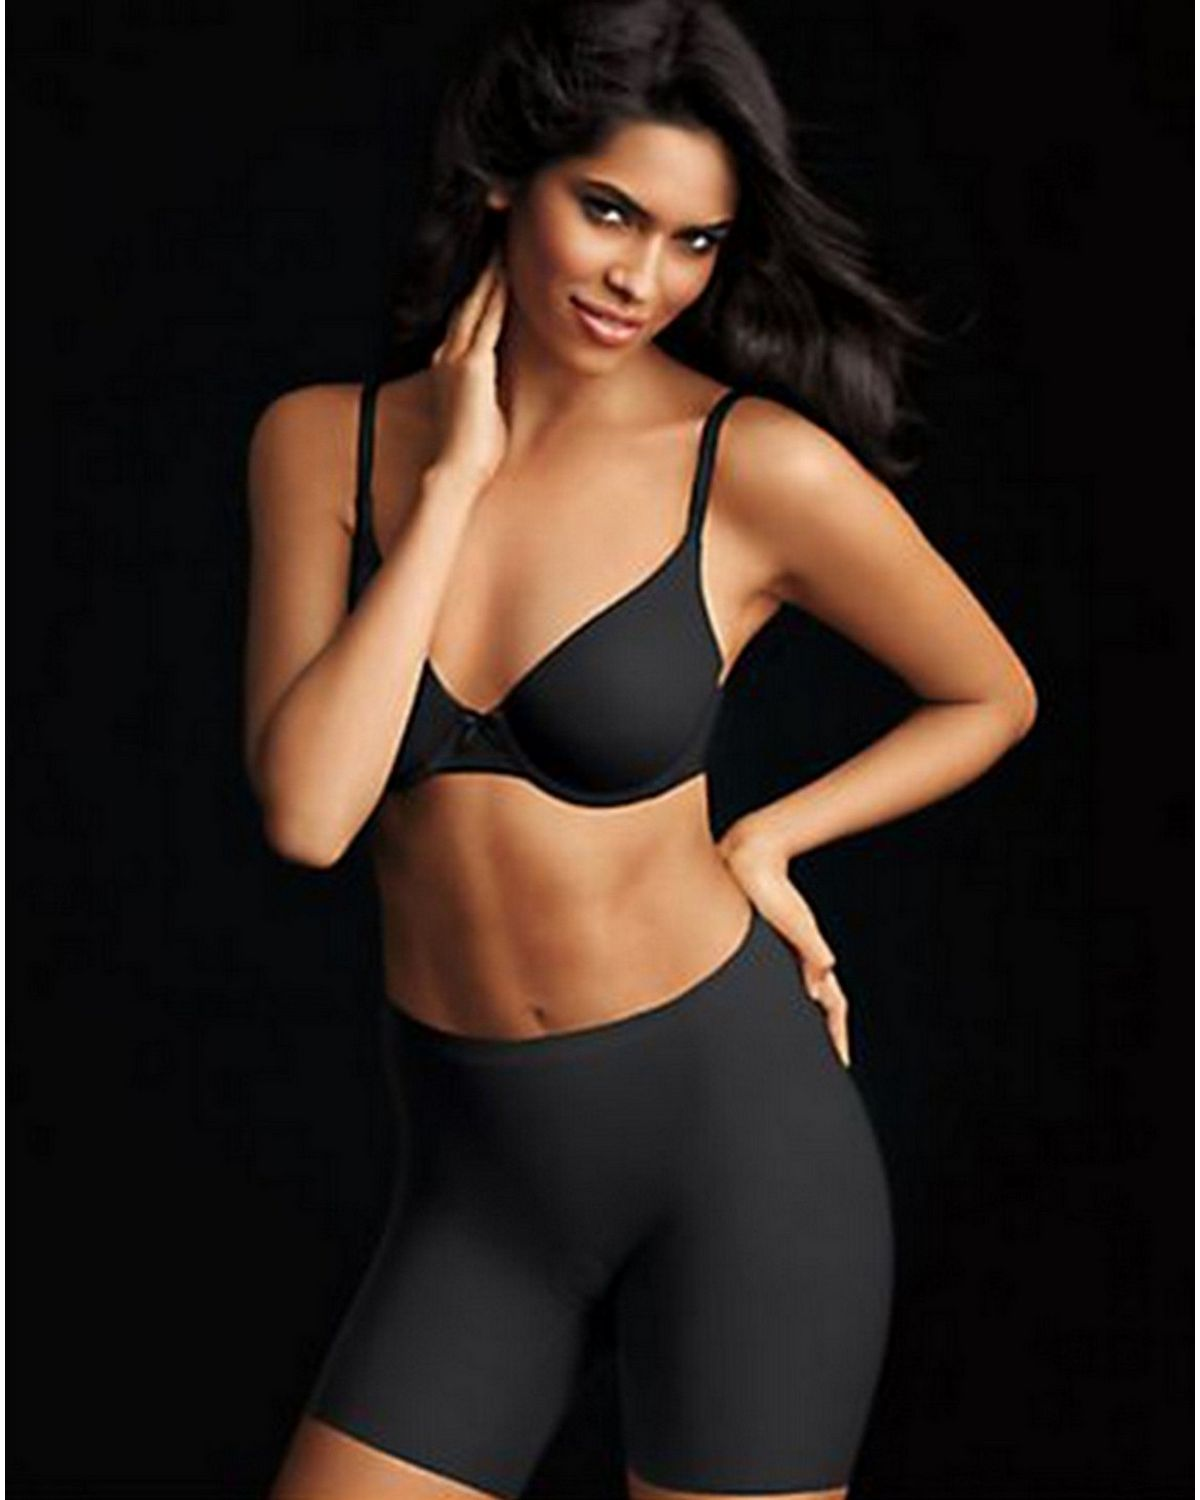 Maidenform 2060 Sleek Smoothers Shorty - Black - XL 2060